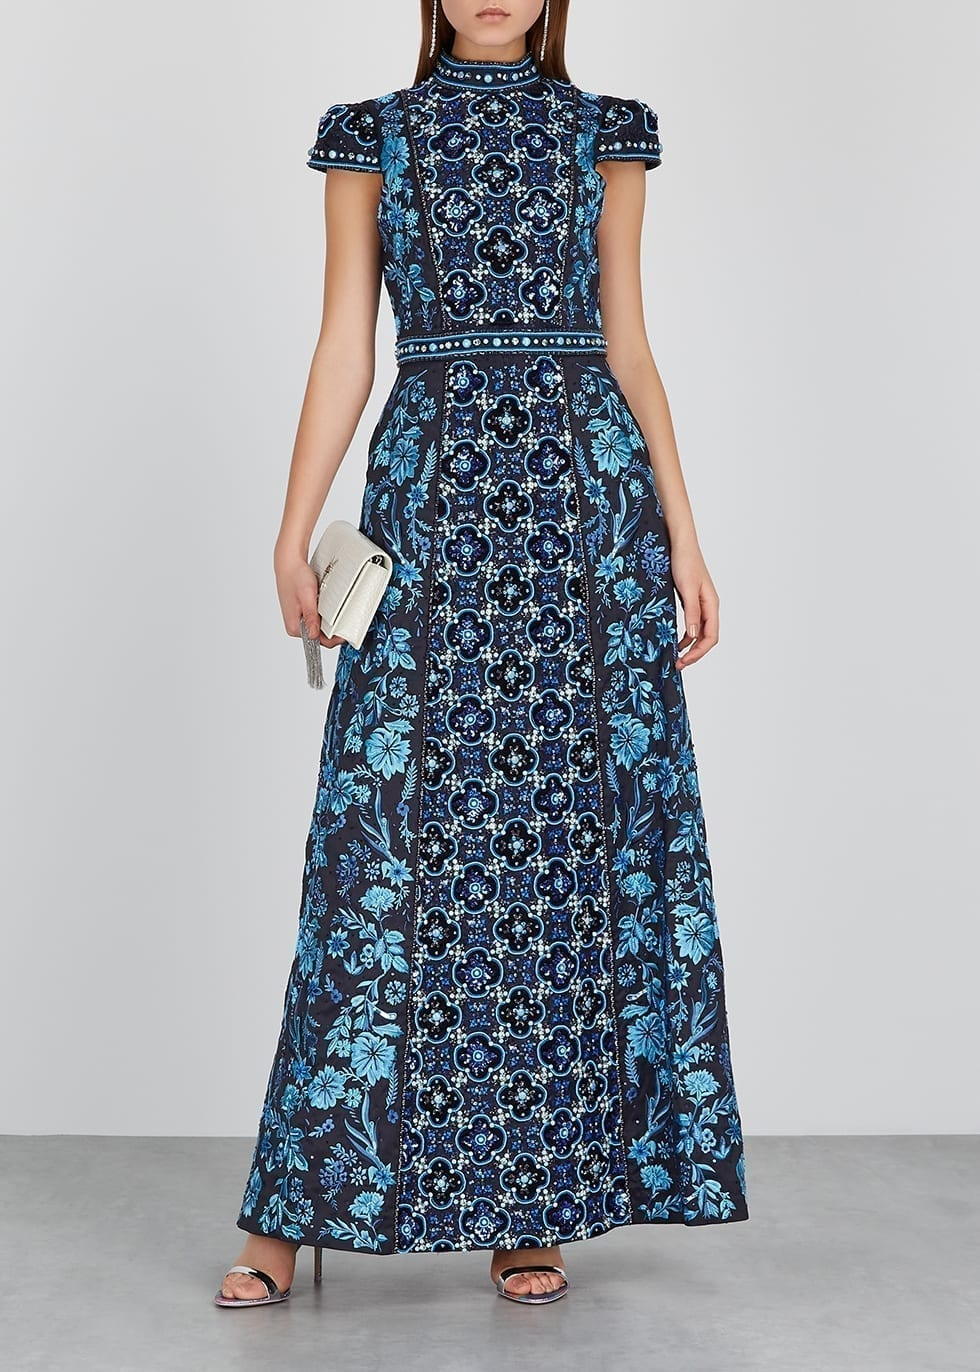 ALICE + OLIVIA Nidia Navy Embellished Satin Gown